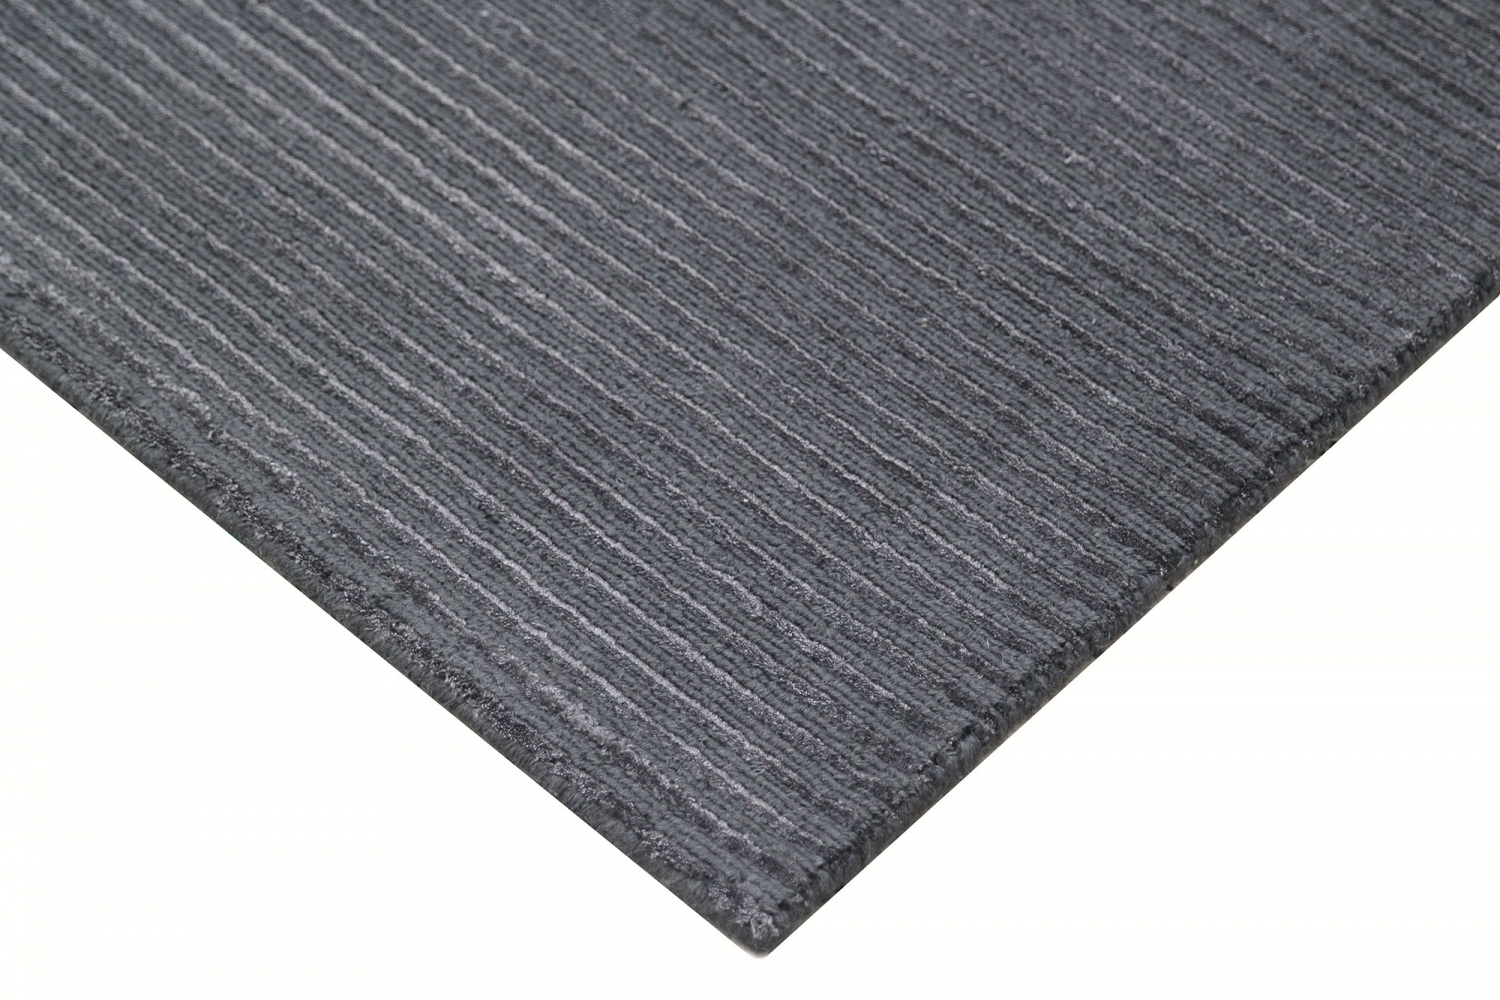 Marco - Charcoal rugs